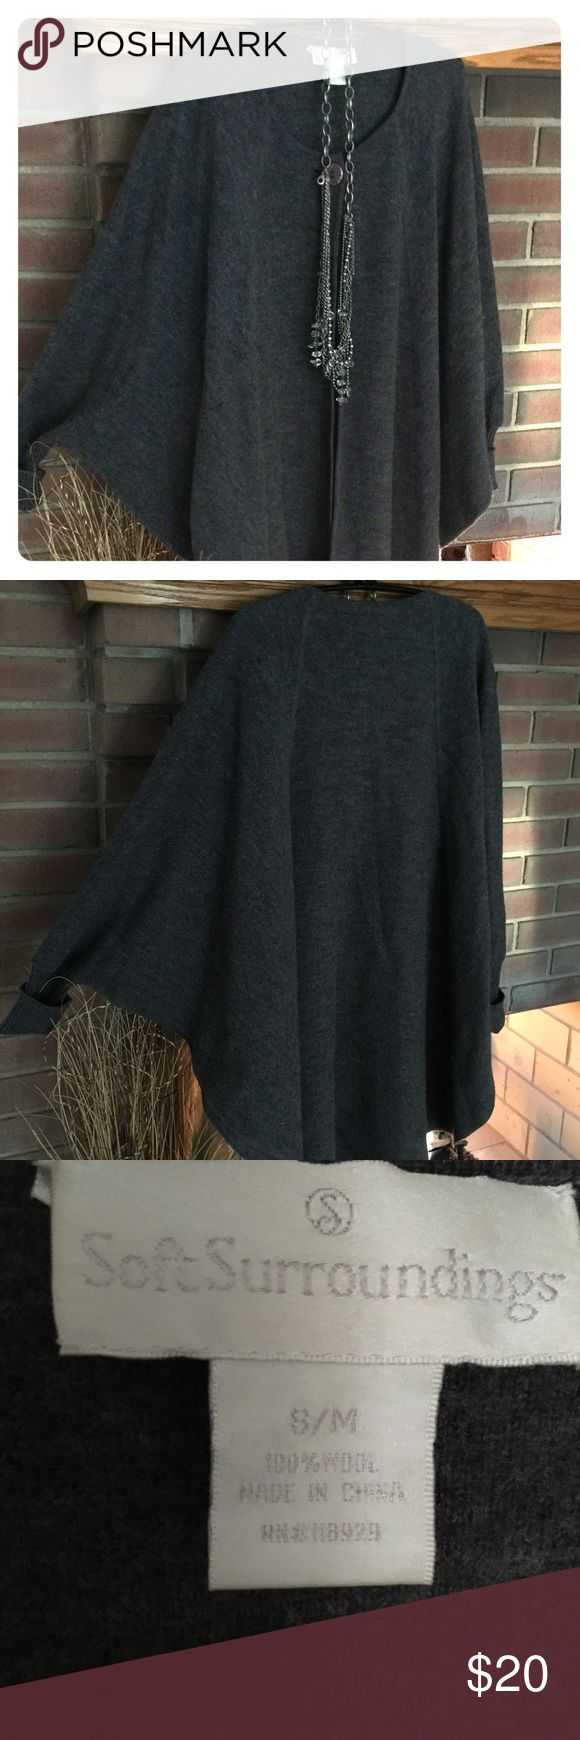 "Coldwater Creek Sleeved Cape-S/M 100% Wool.  Single button/""batlike"" sleeves.  This will definitely keep the chill out.  Dress up or down. Coldwater Creek Jackets & Coats Capes"